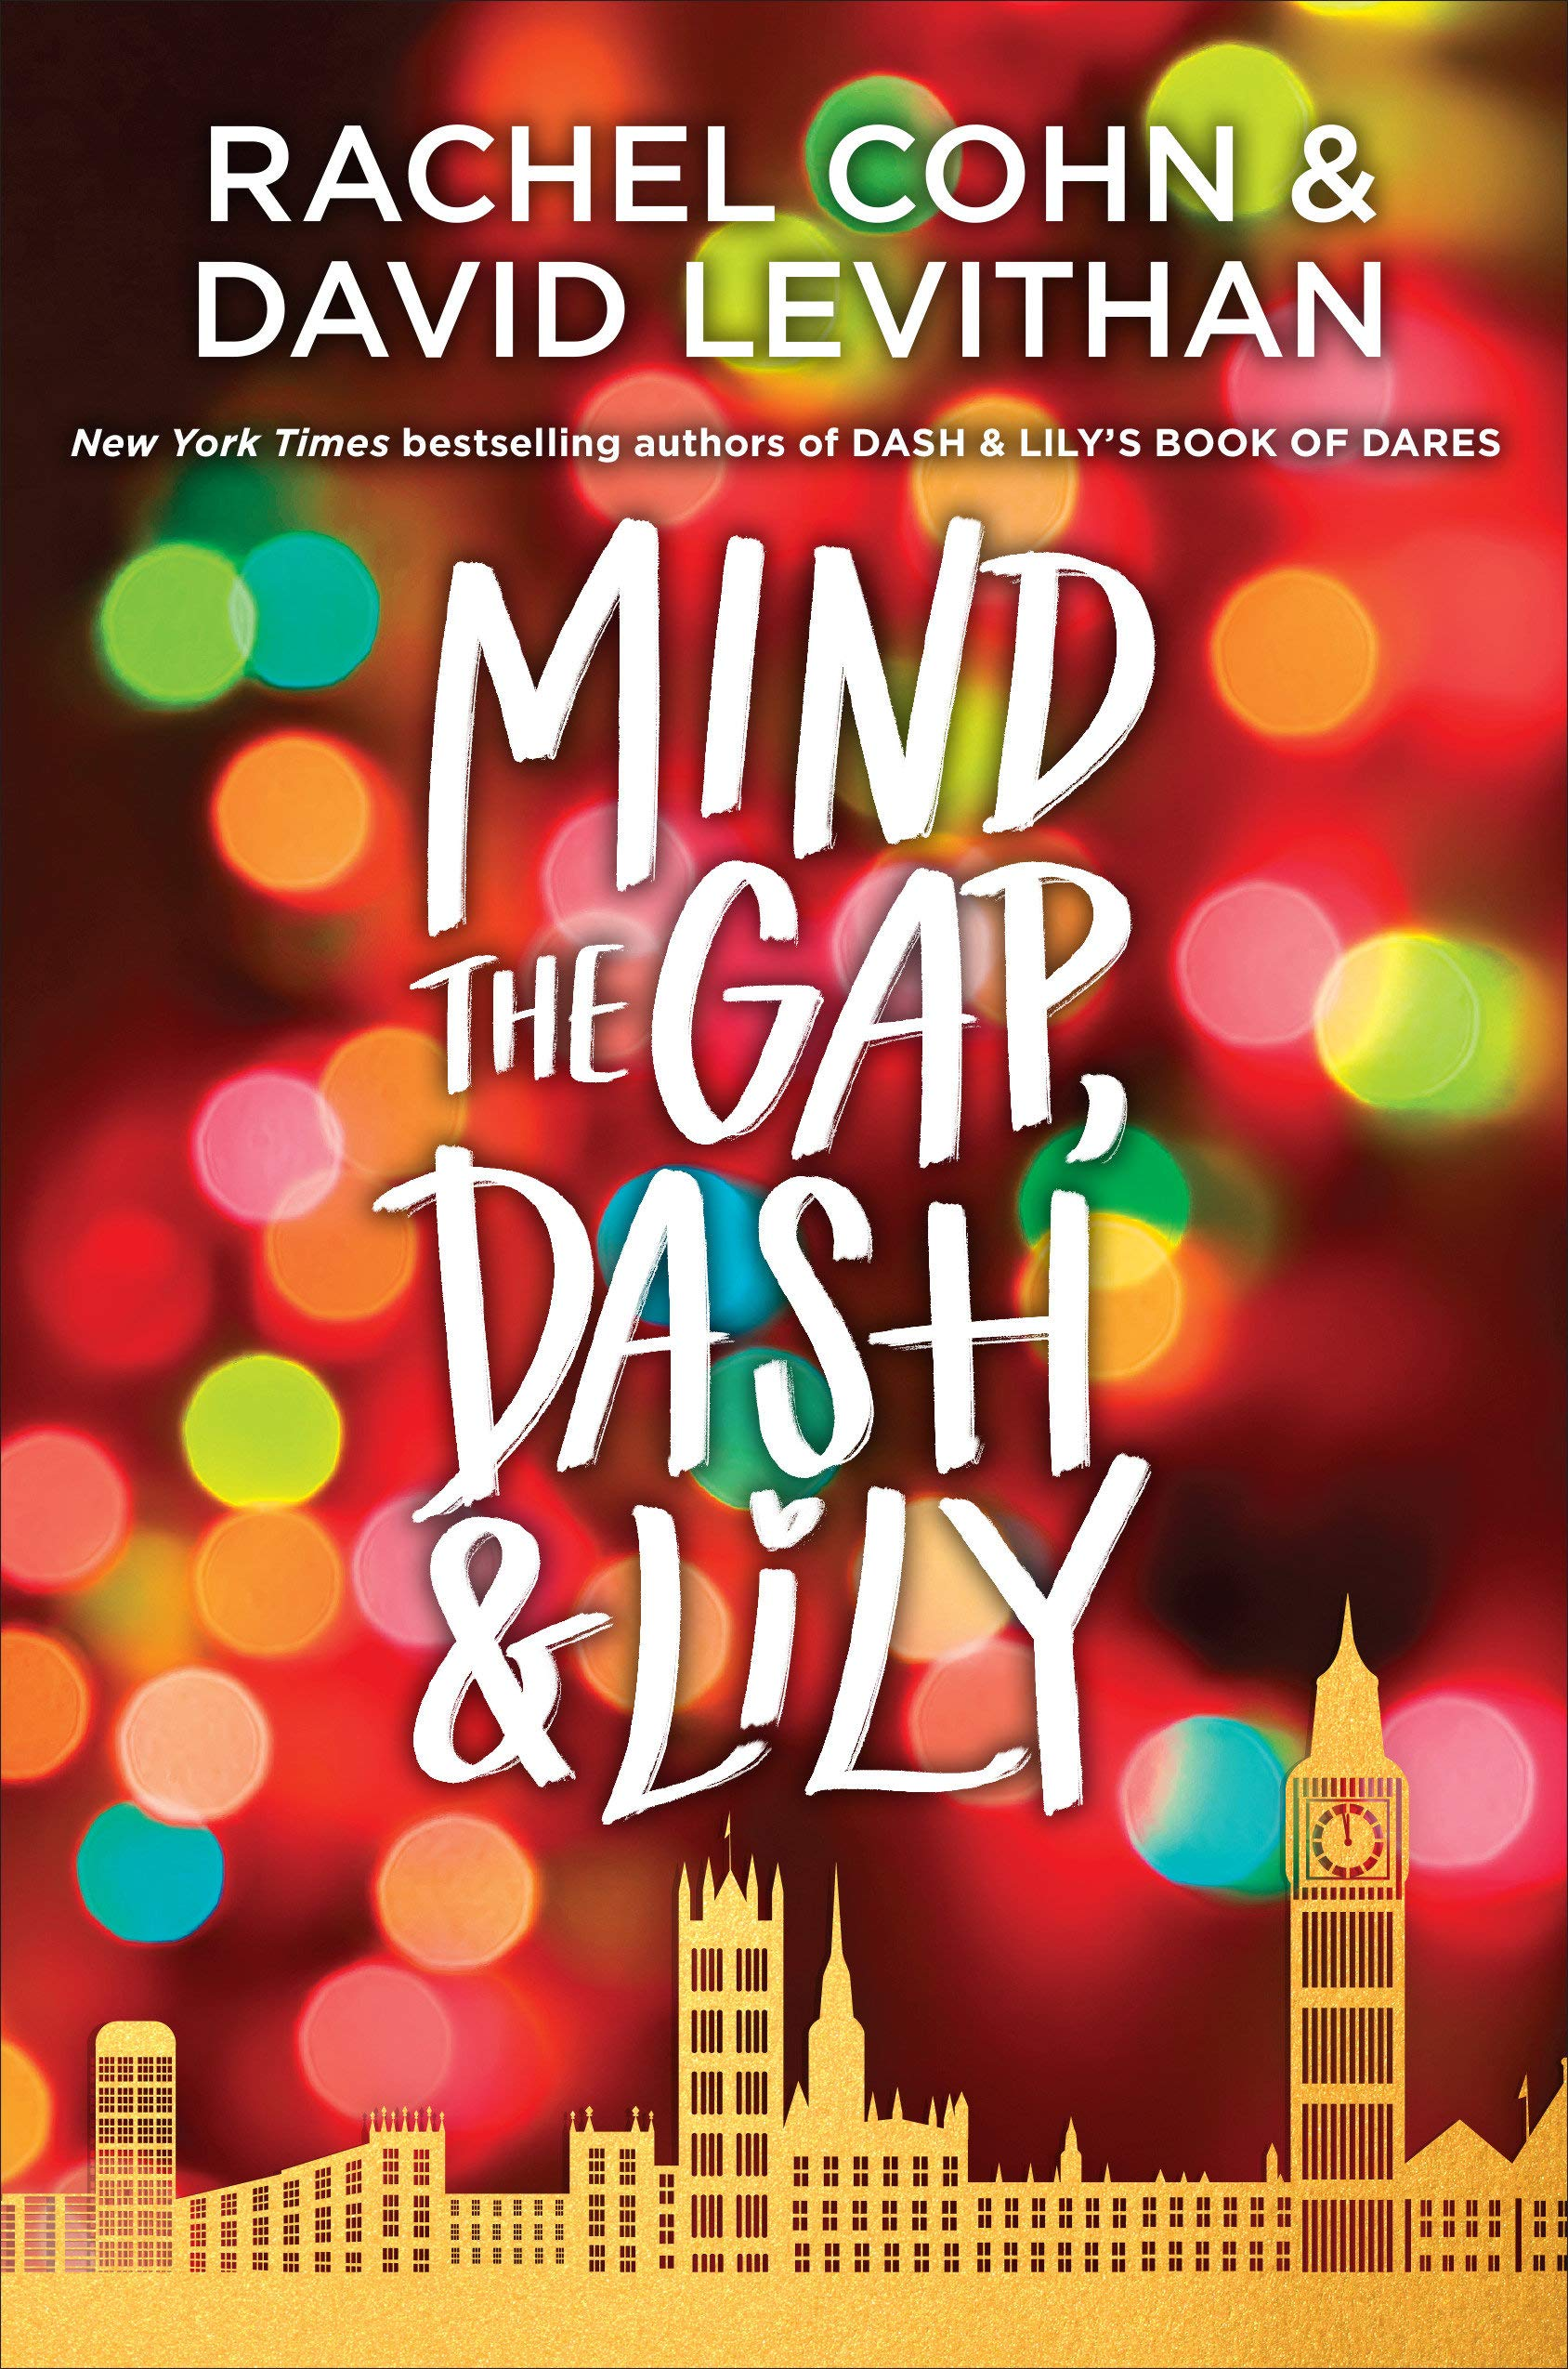 Amazon.com: Mind the Gap, Dash & Lily (Dash & Lily Series) (9780593301531):  Cohn, Rachel, Levithan, David: Books